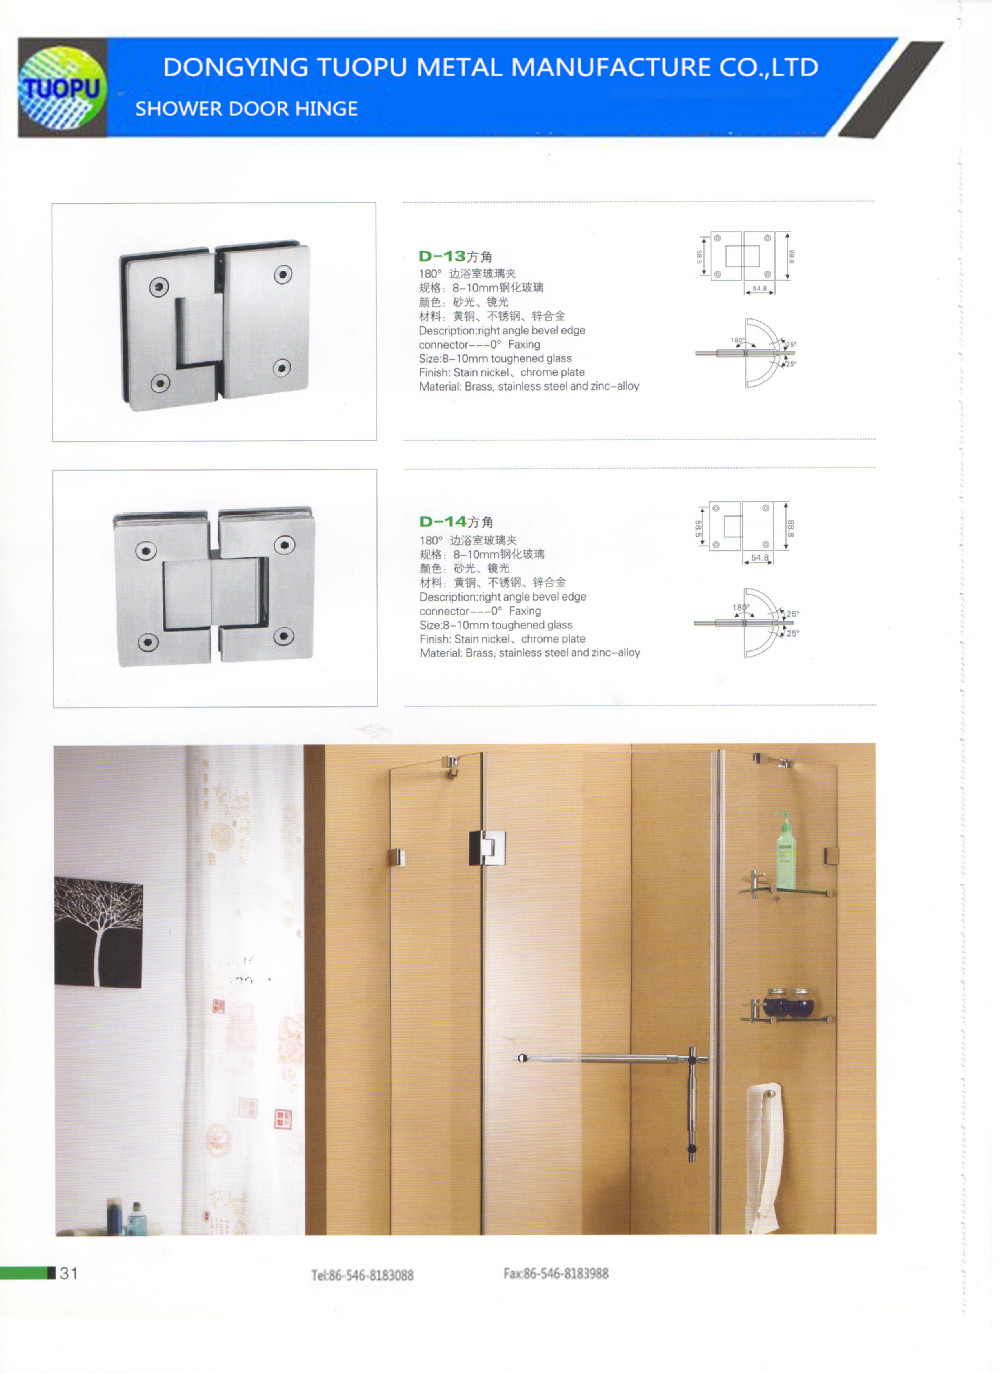 China Factory 90 Degree Glass Shower Door Pivot Hinge Glass Door Hinges Adjust Shower Screen Pivot Hinges Buy Glass Door Hinges Glass Shower Door